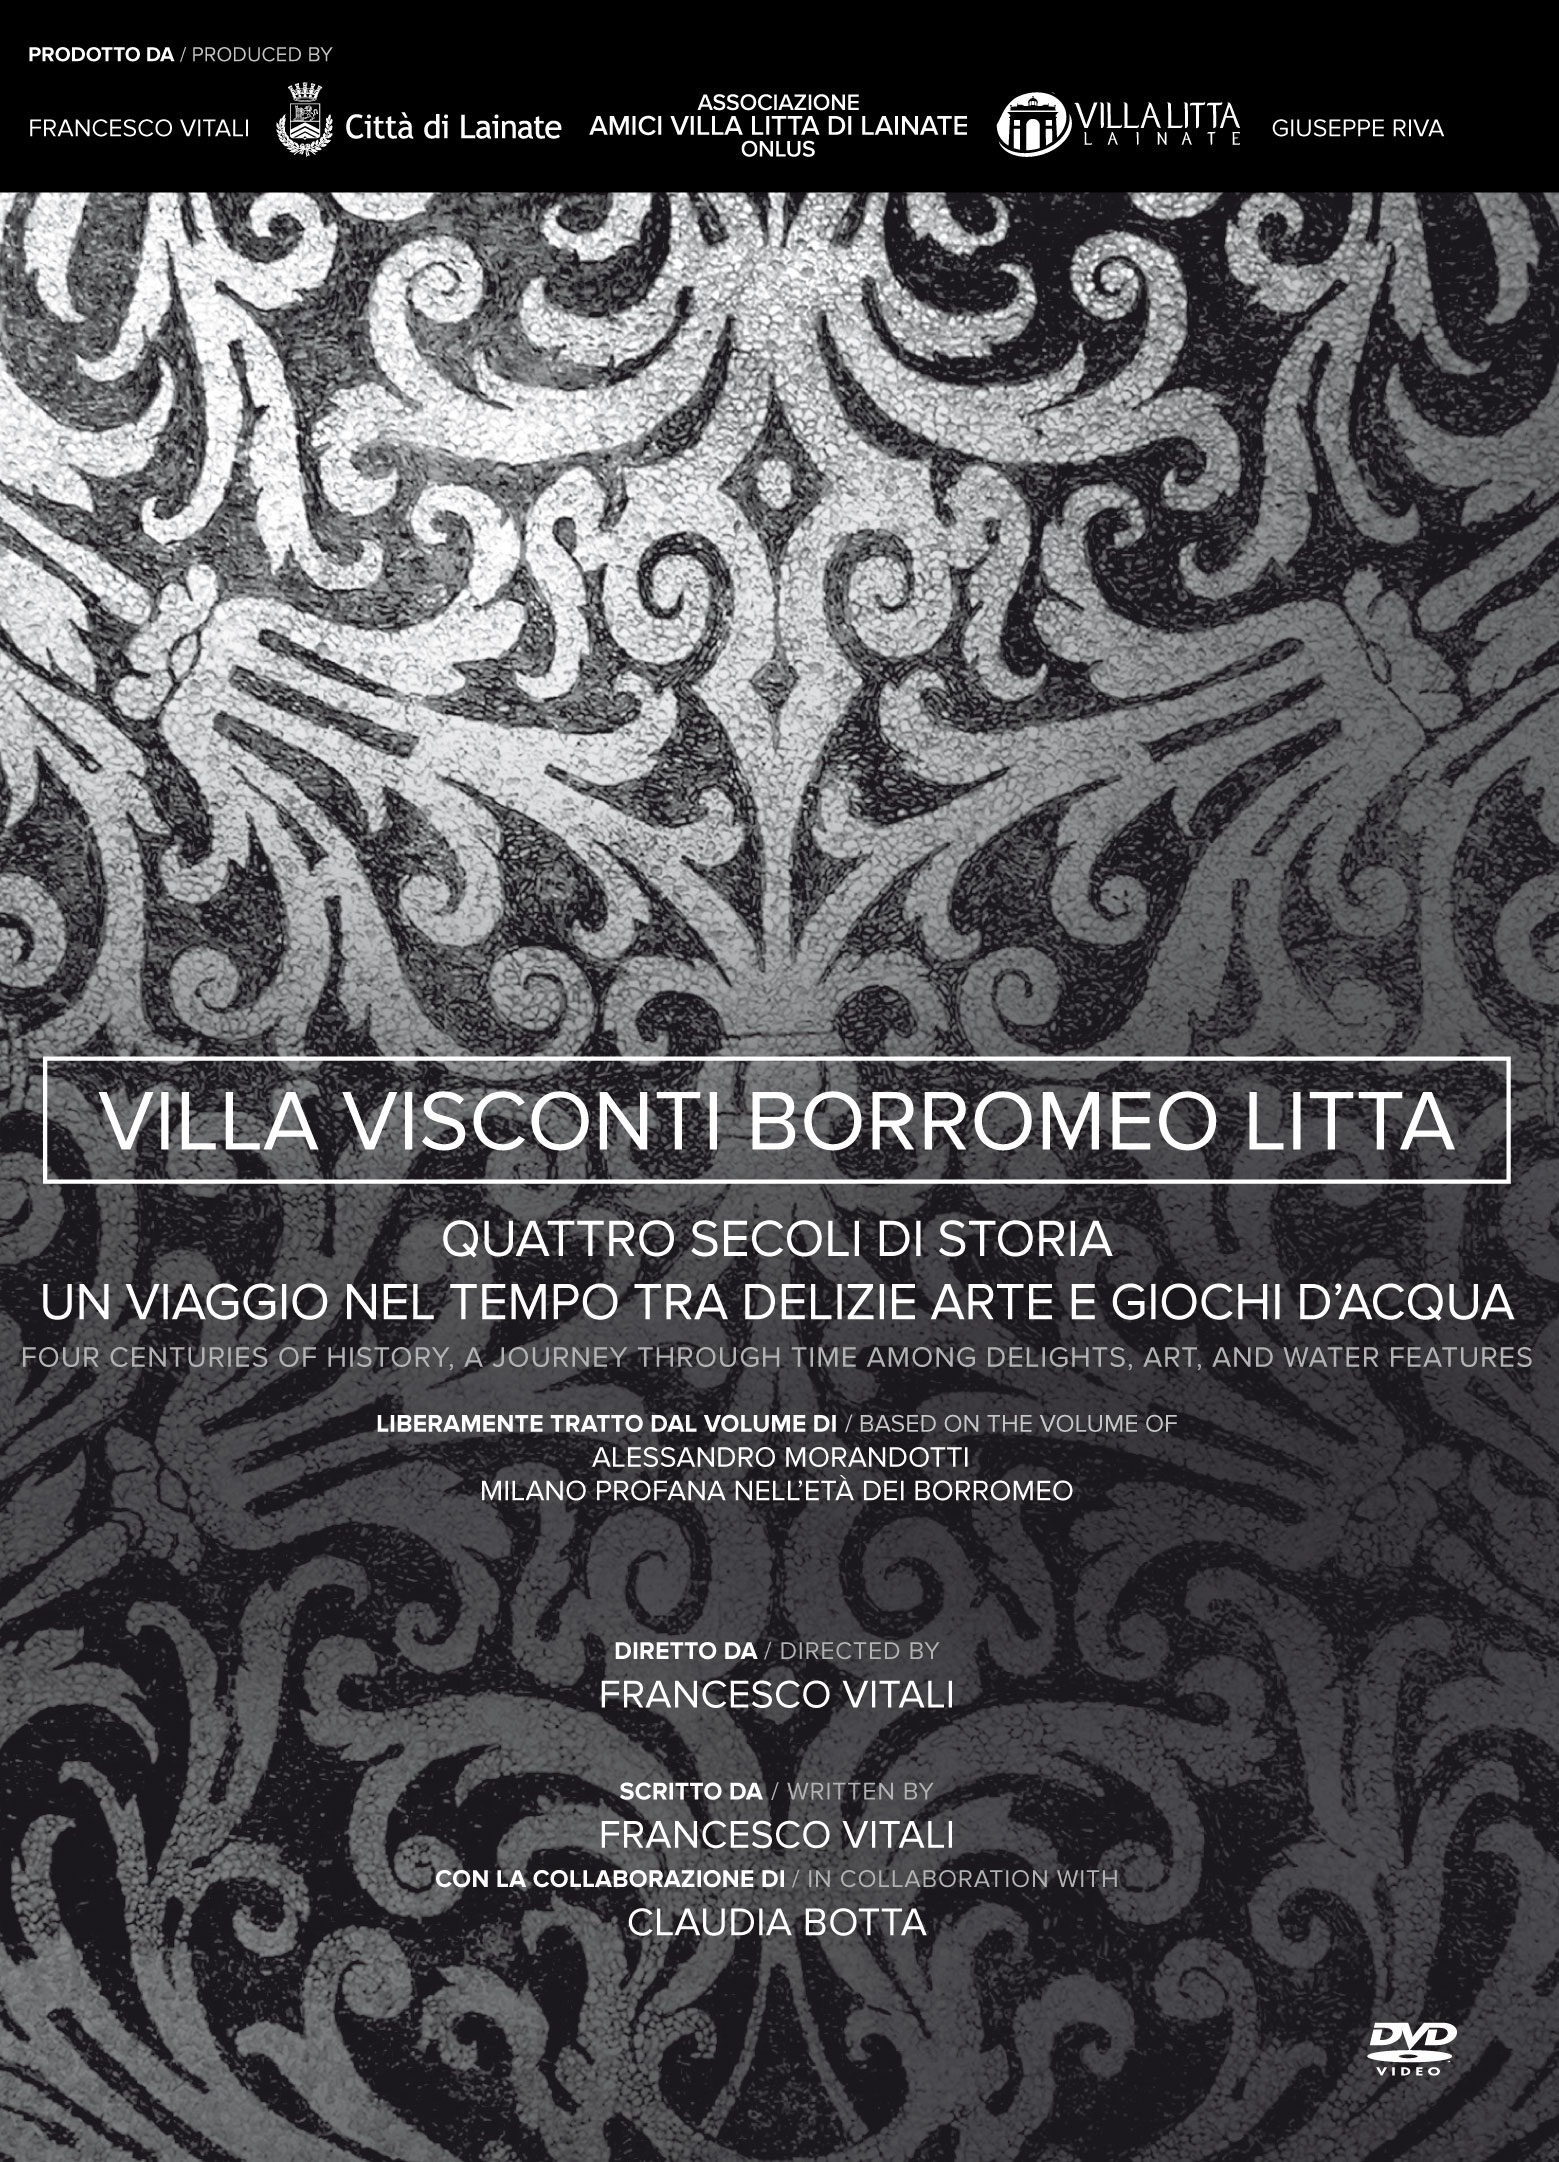 DVD Villa Visconti Borromeo Litta the film 2018